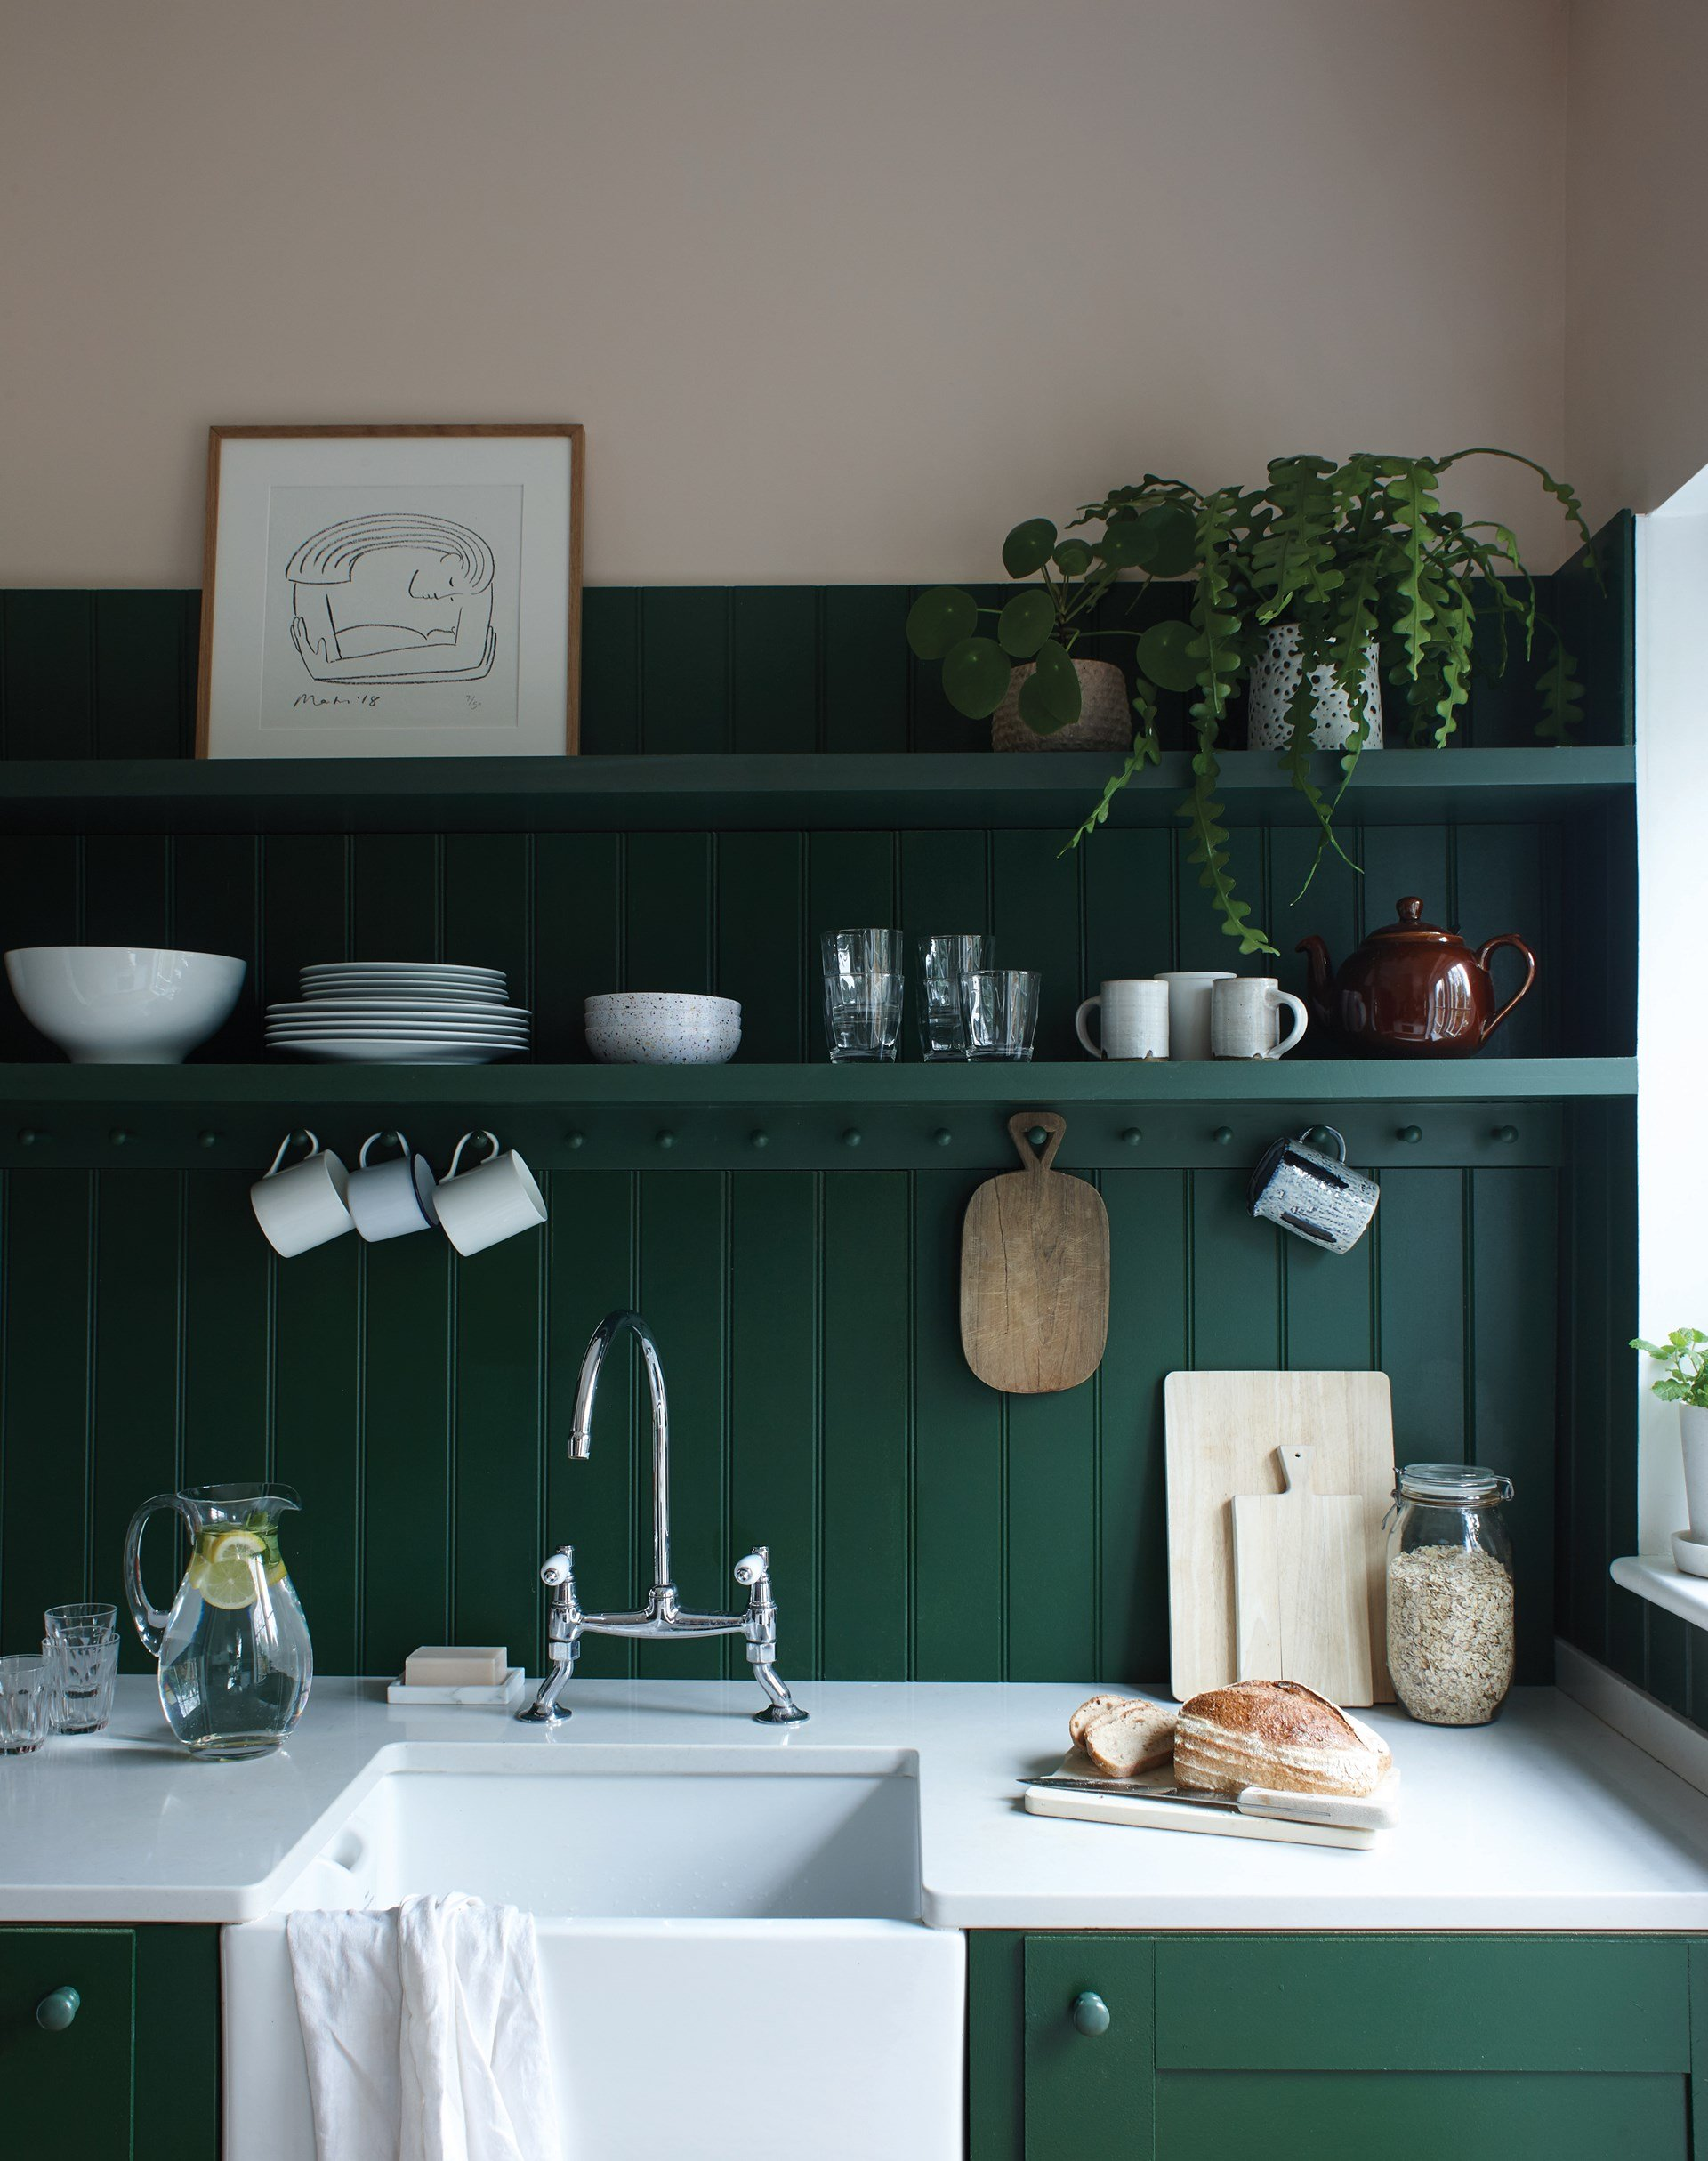 duck-green-kitchen